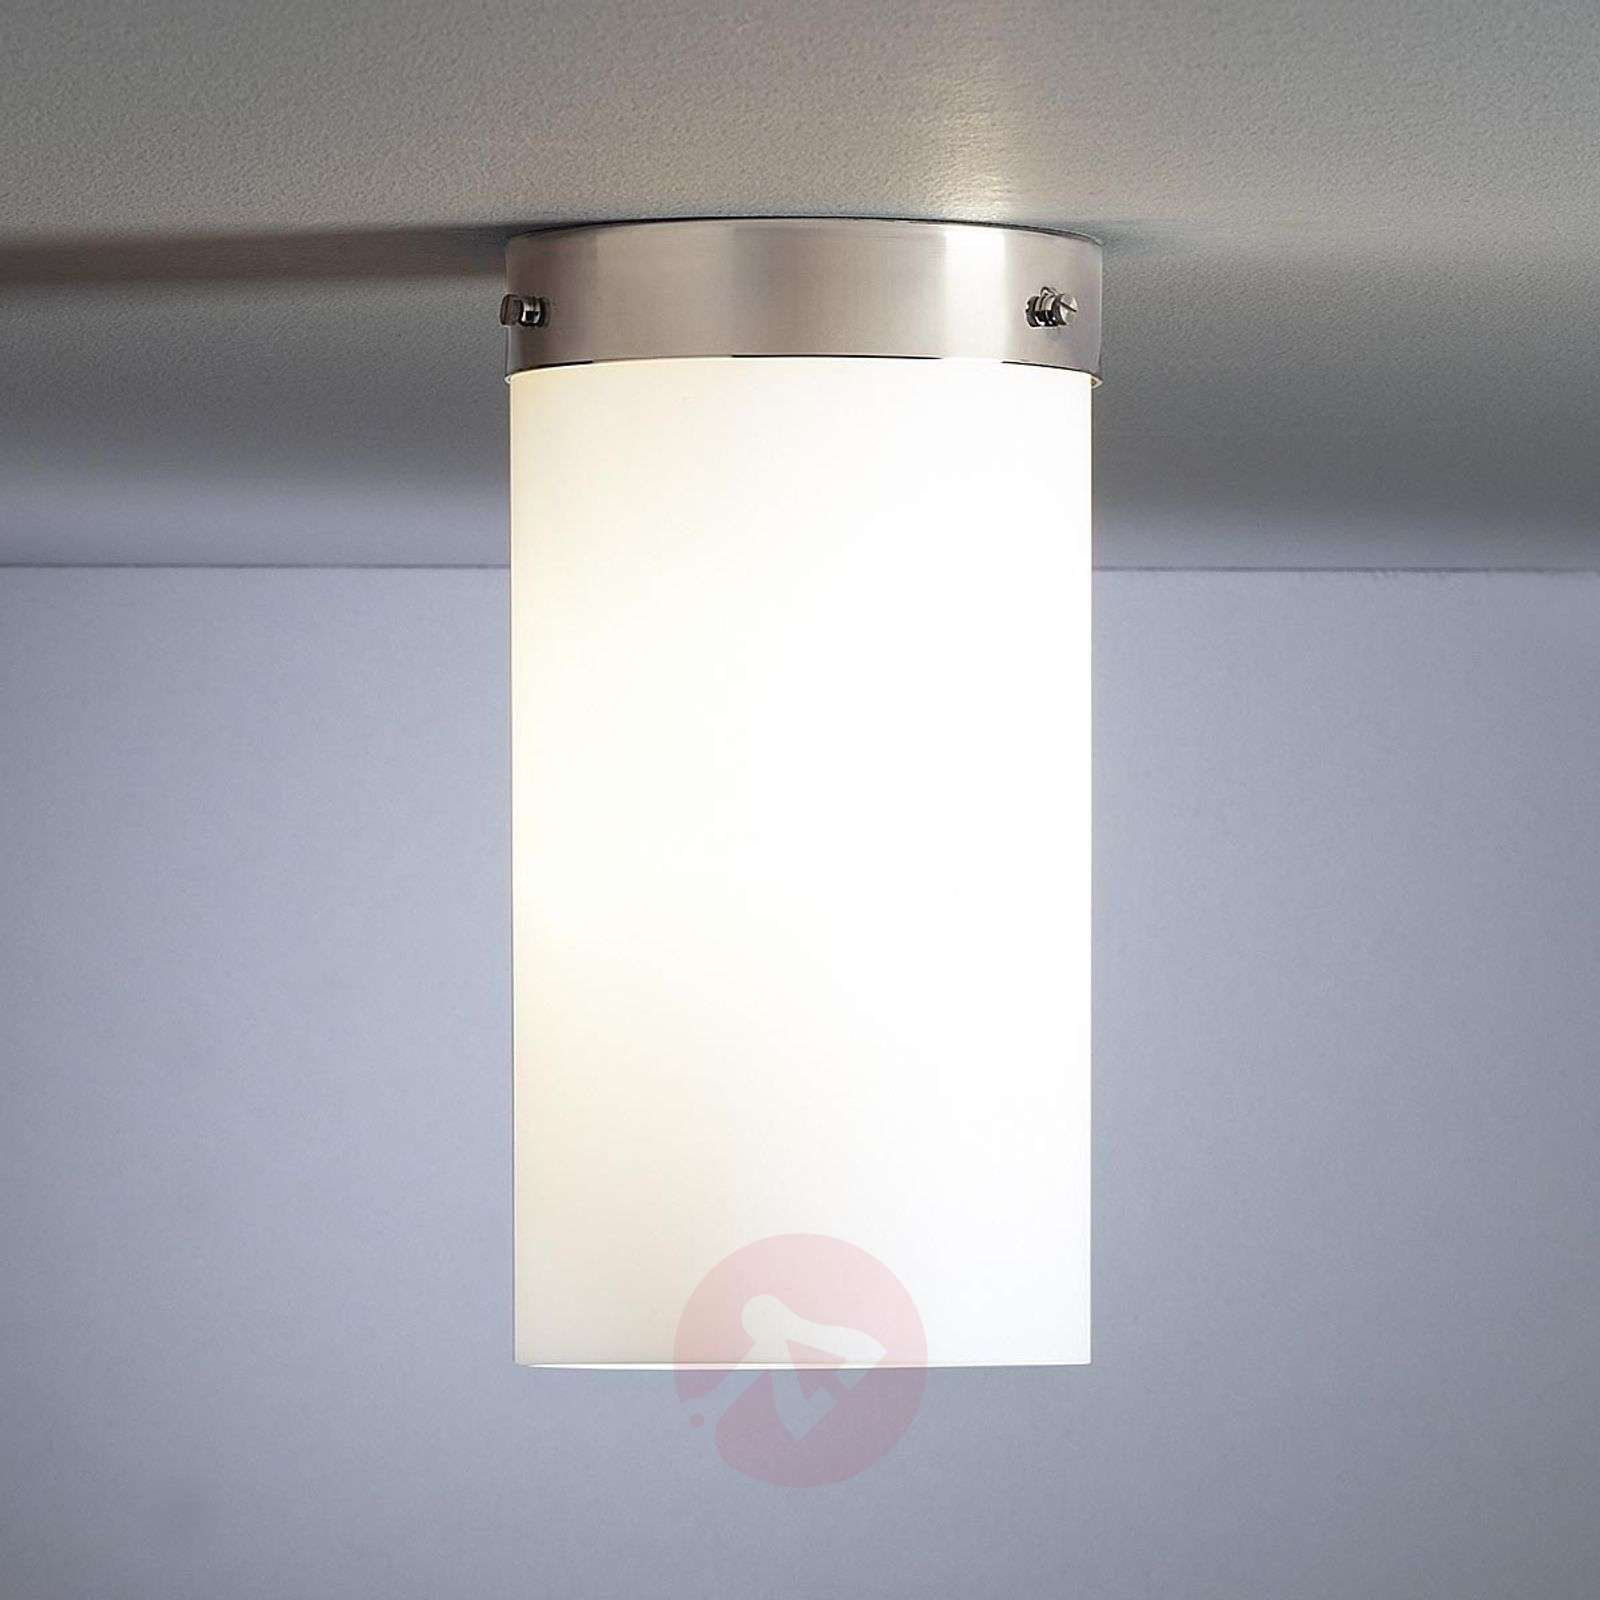 Marianne Brandts ceiling light from 1928-29-9030097-01